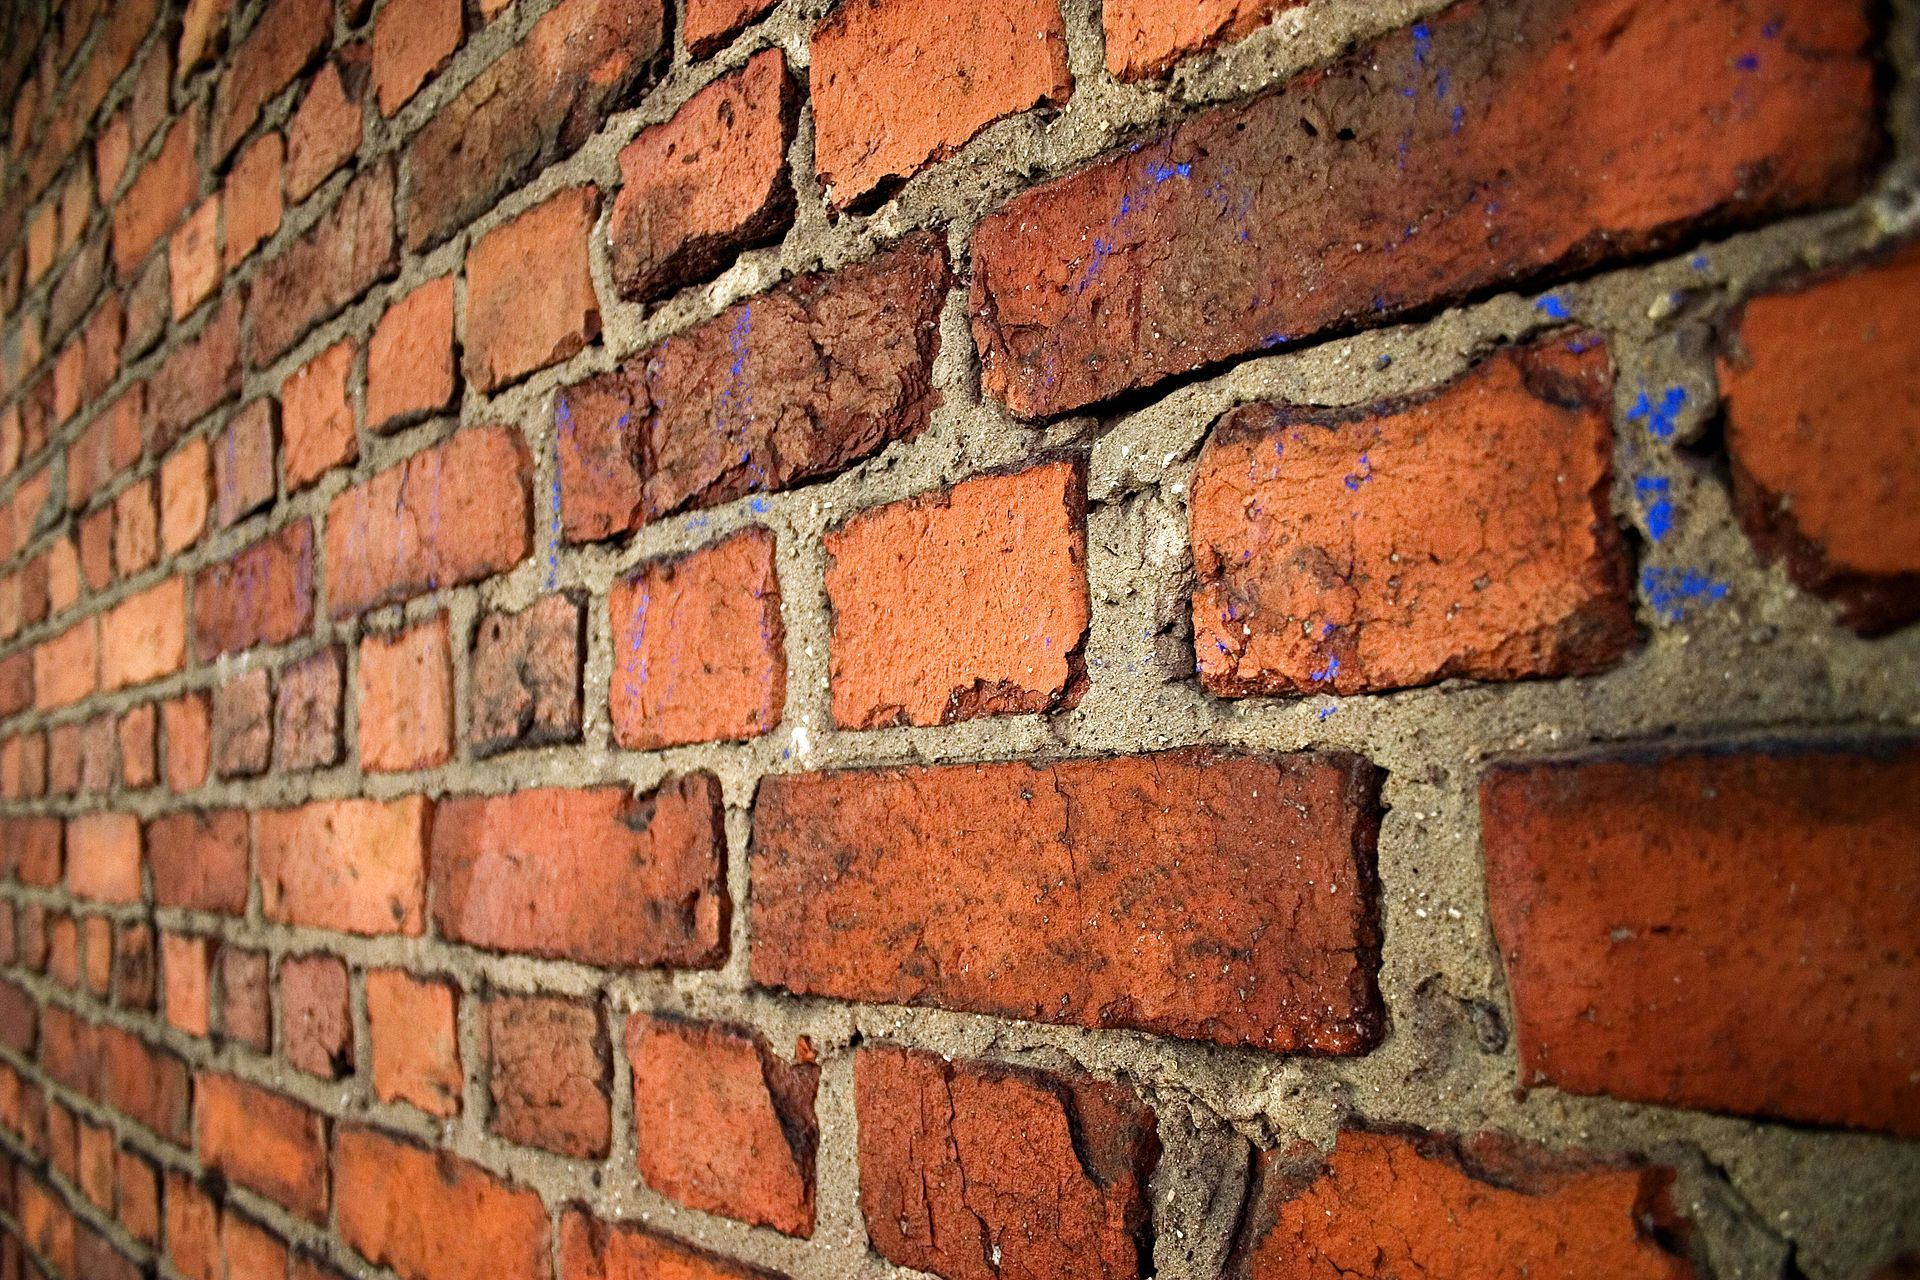 An Old Brick Wall In English Bond Laid With Alternating